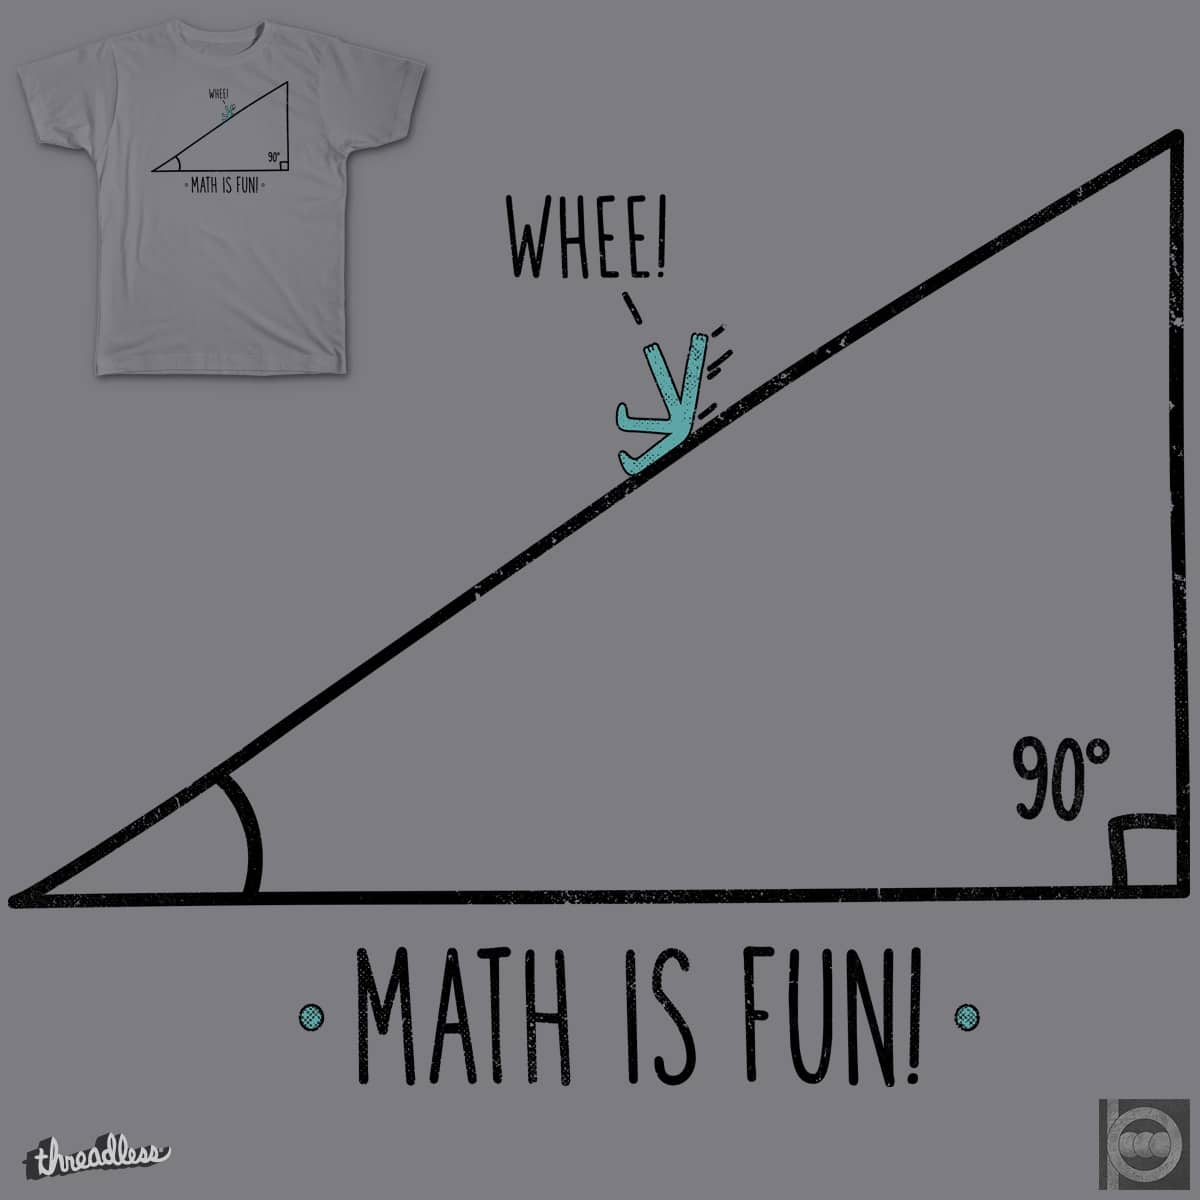 maths is fun Learn math with fun learn calculus with fun calculus ain't that hard without the ads, you can focus get a start over your peers.